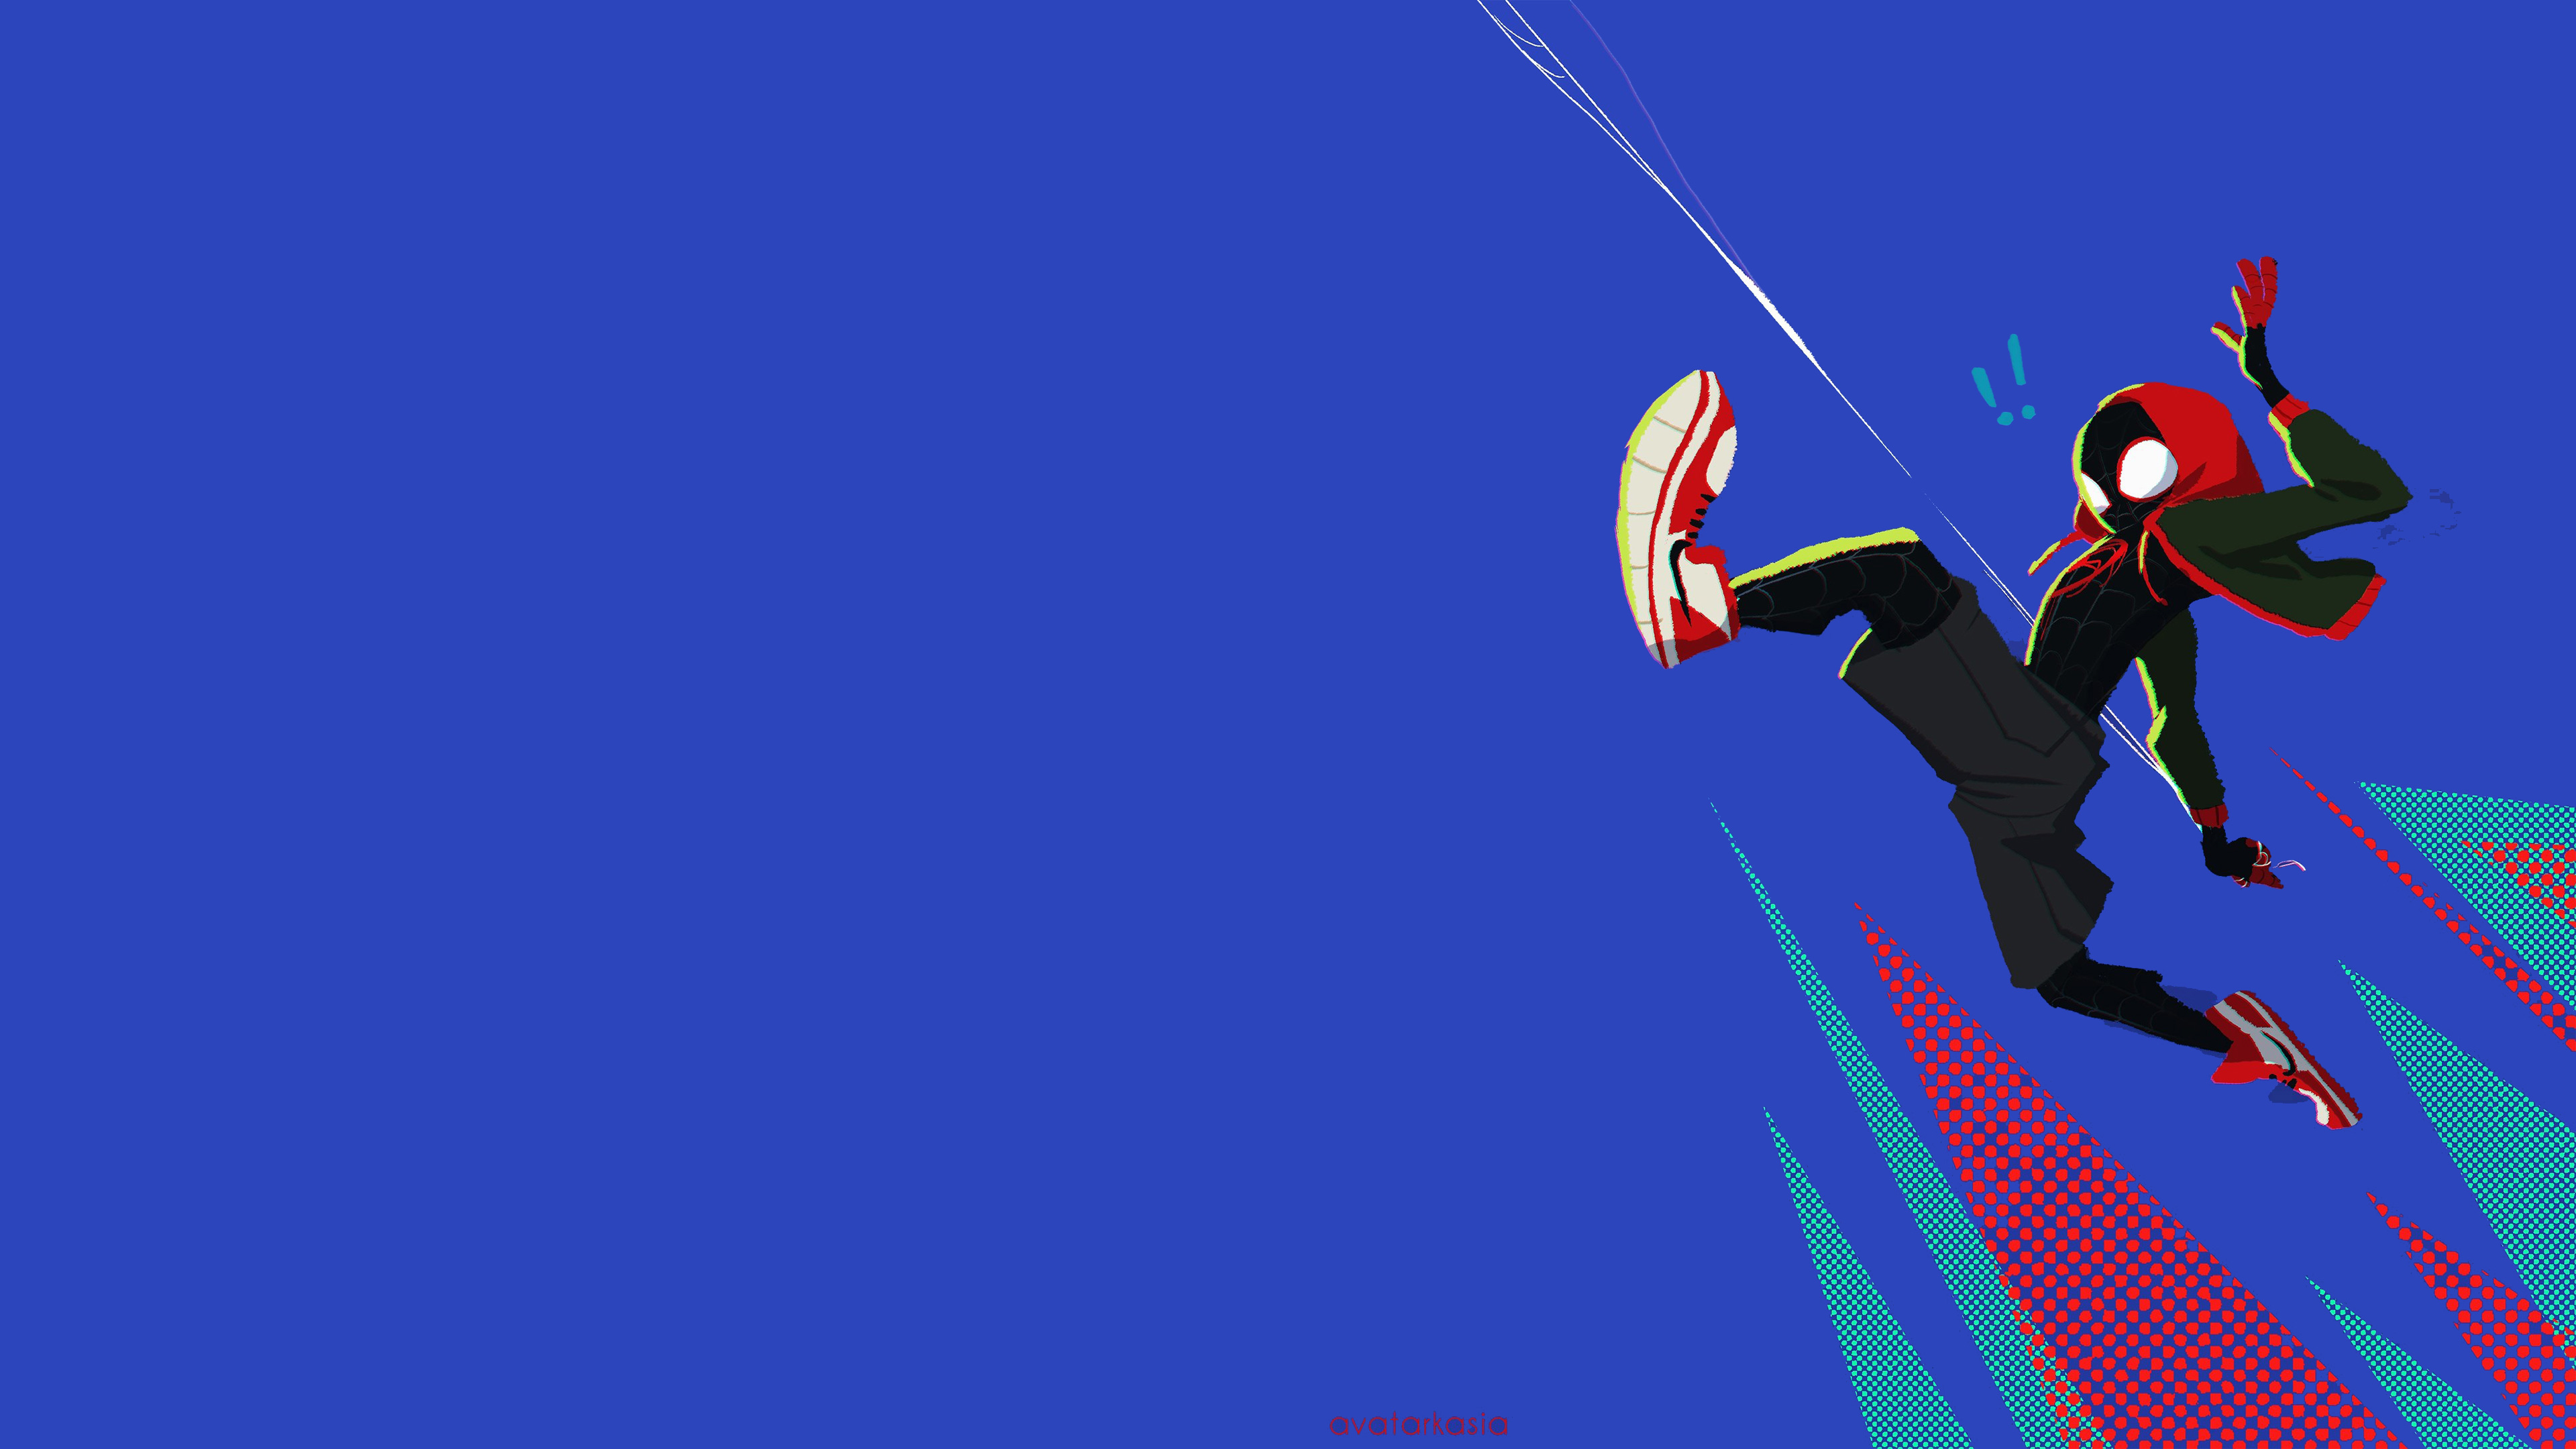 Wallpaper 4k Spiderman Into The Spider Verse Movie 4k 2018 Art 2018